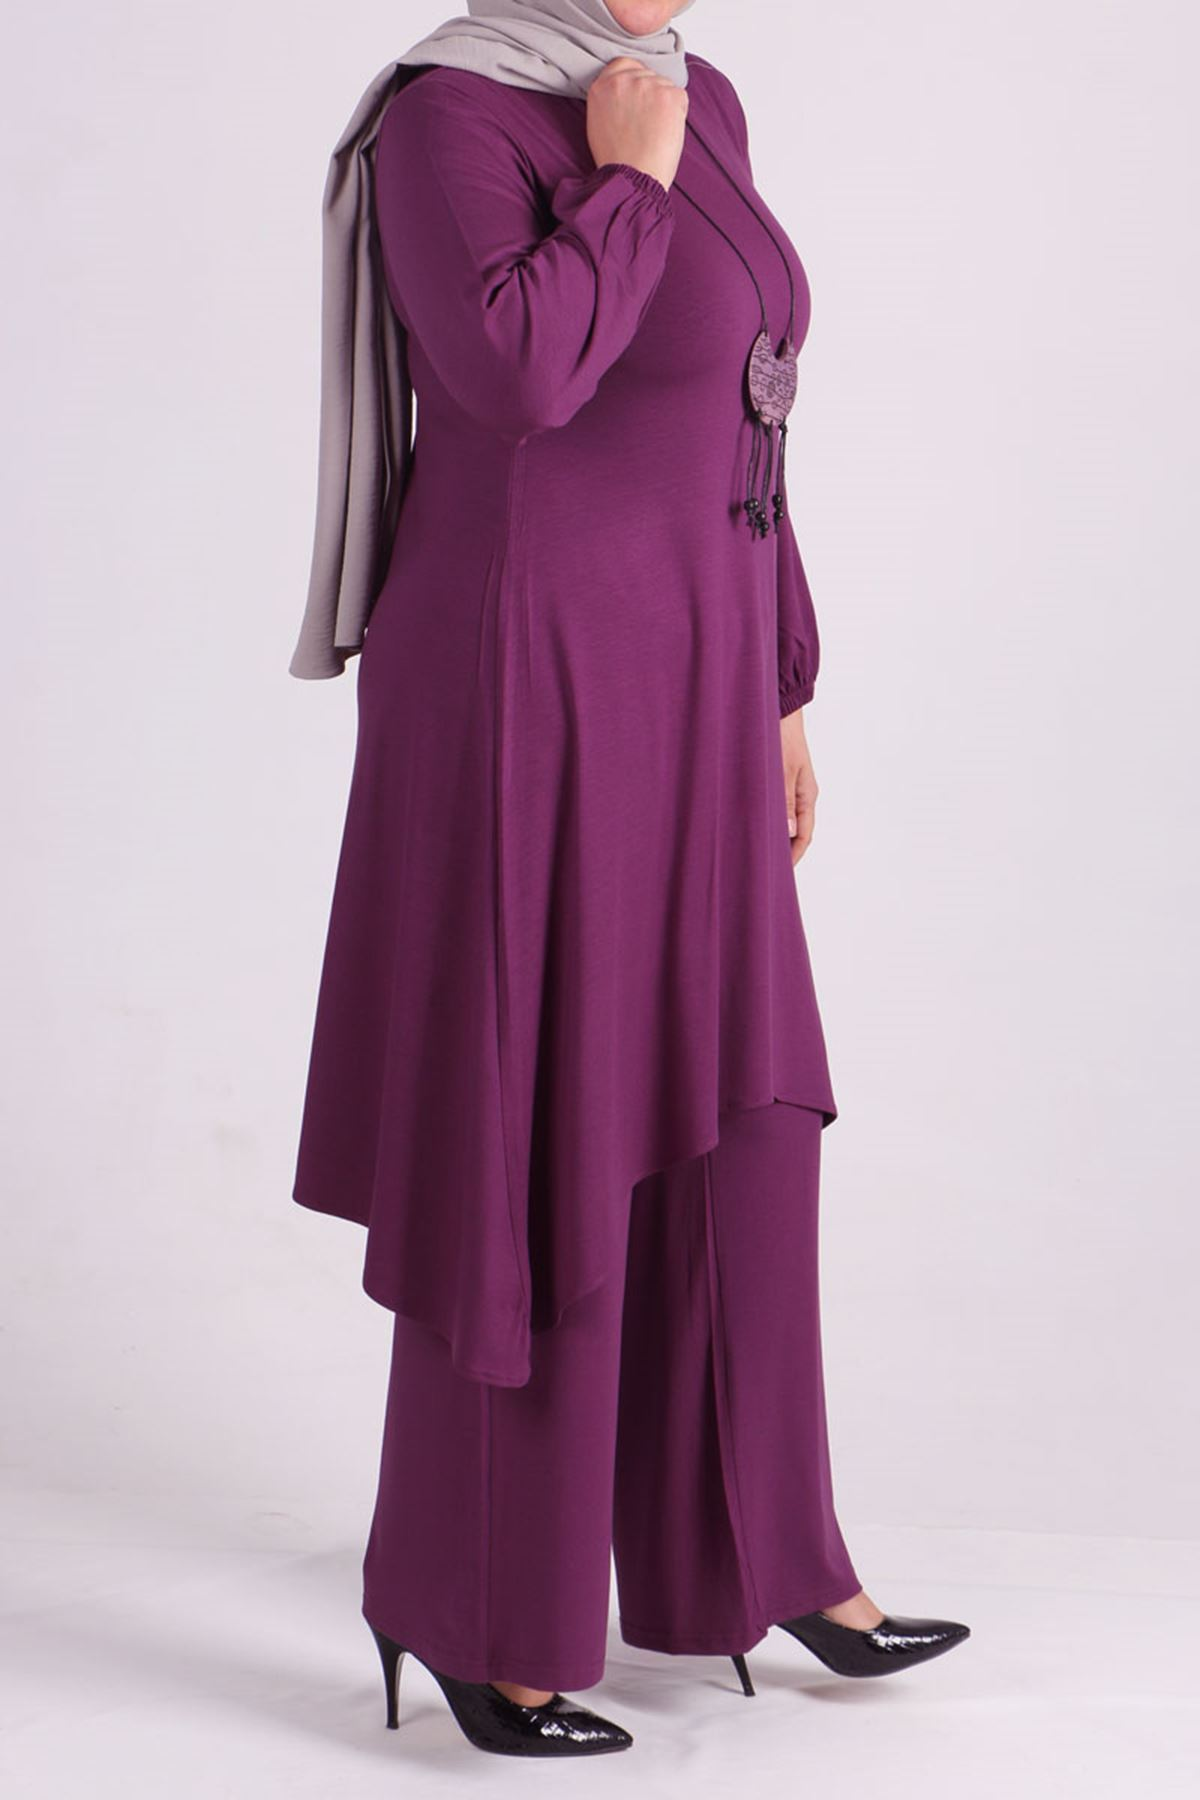 7526 Plus Size Two Piece Set with Tunic and Pants- Lilac